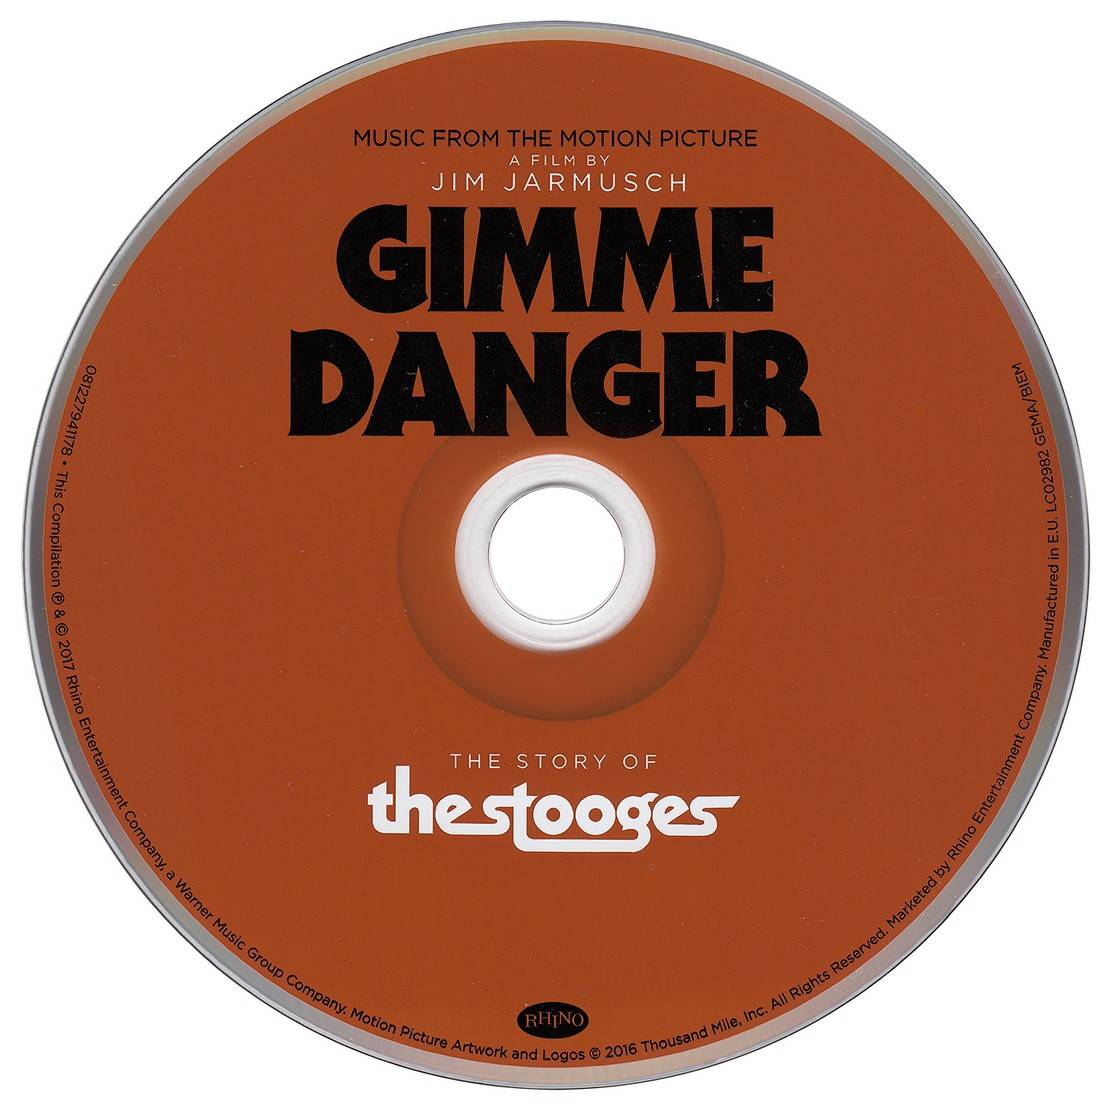 The Stooges - Gimme Danger: Music from the Motion Picture (2017) {Rhino 081227941178}